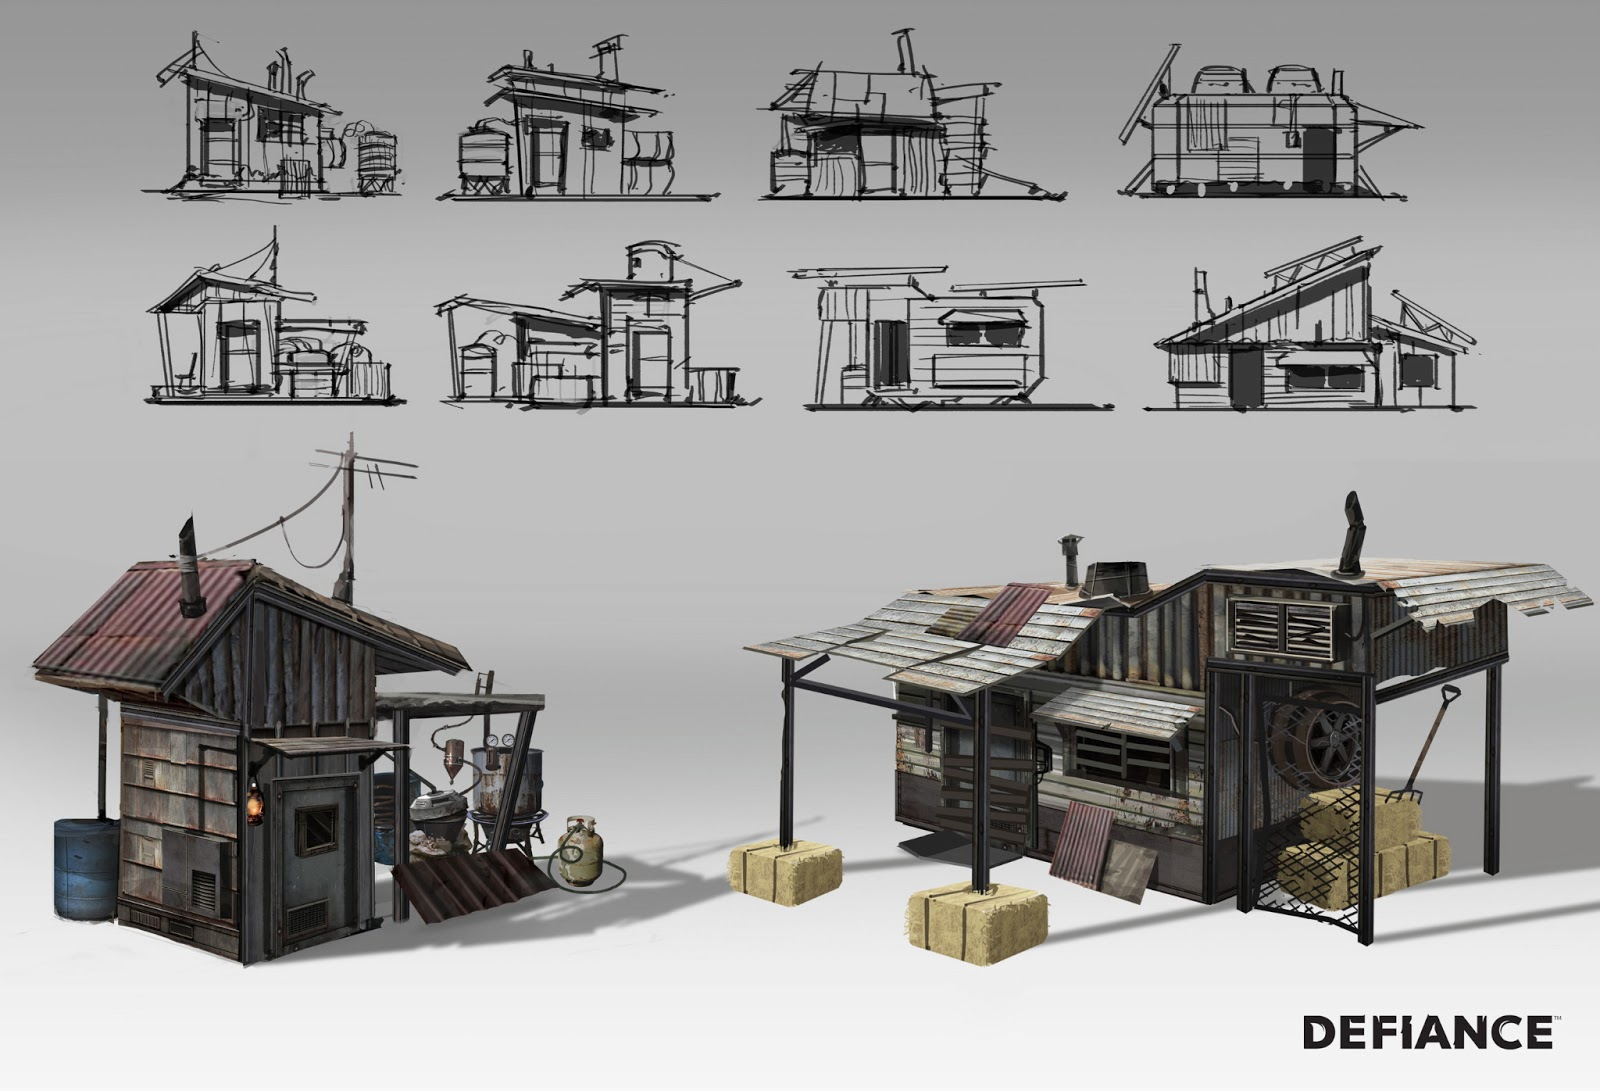 Danny pak art of defiance - Build house plans online free concept ...